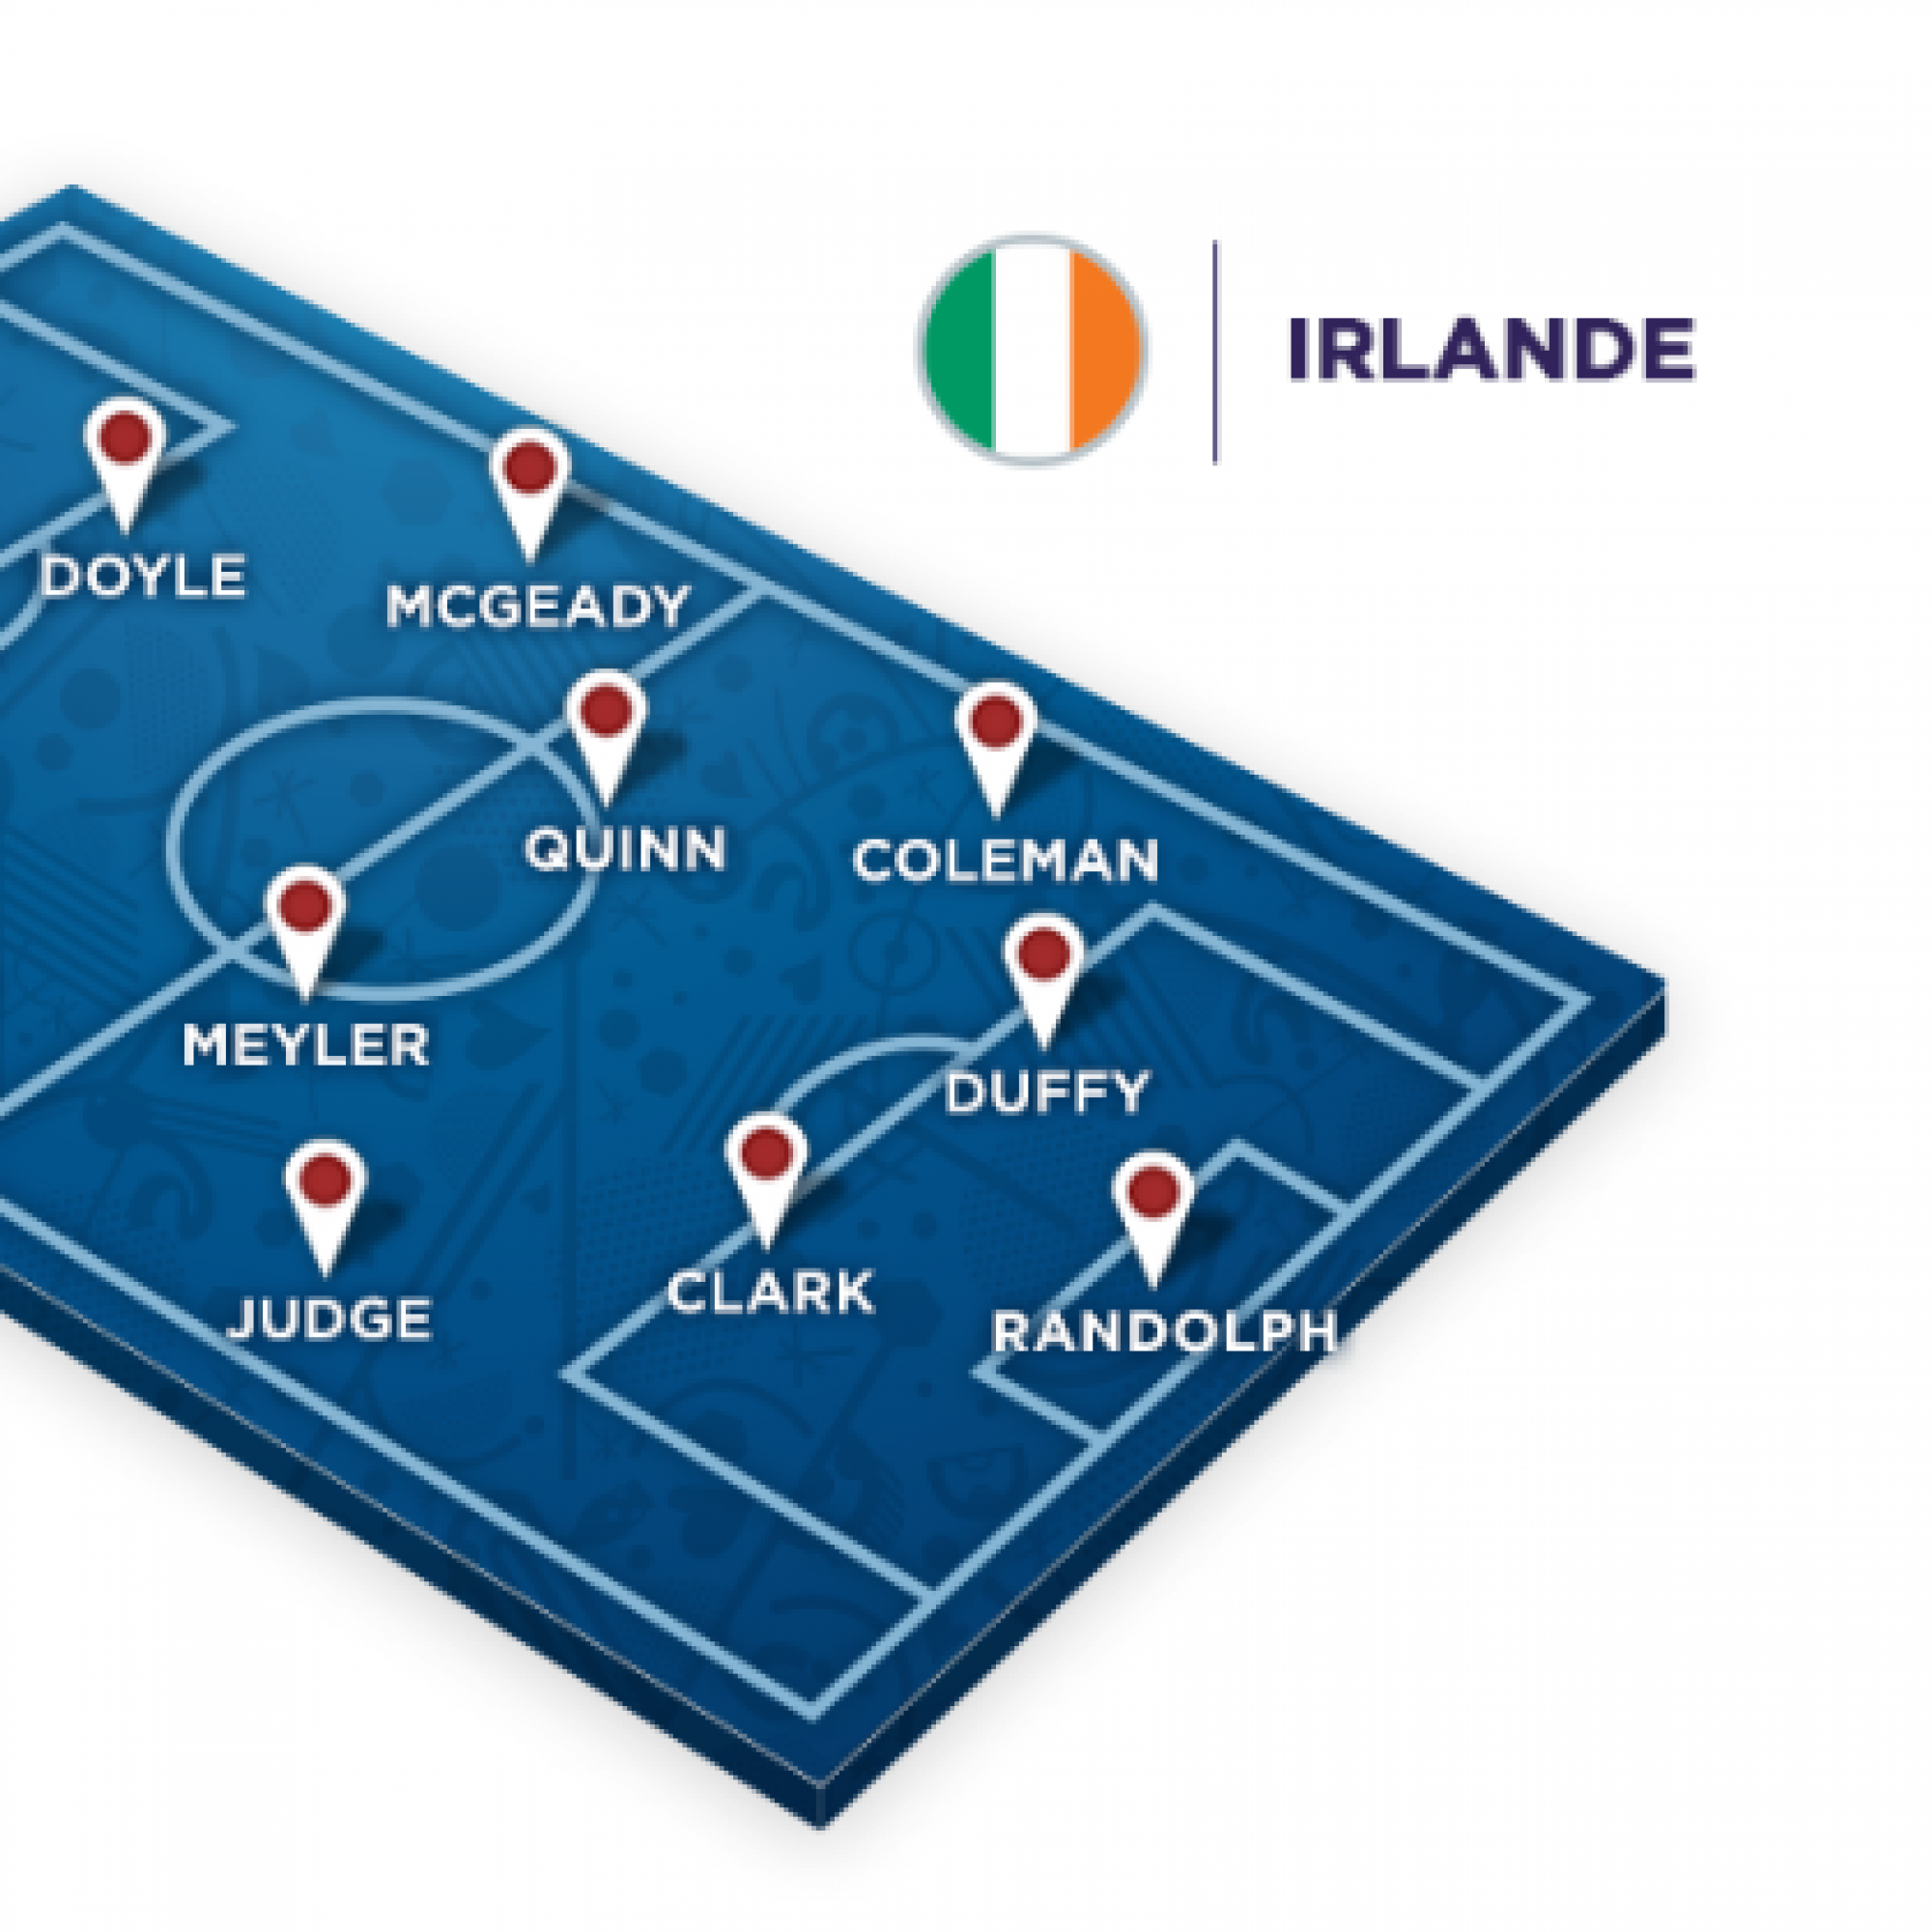 A French sports outlet has a unique take on Ireland's starting XI for the Euros